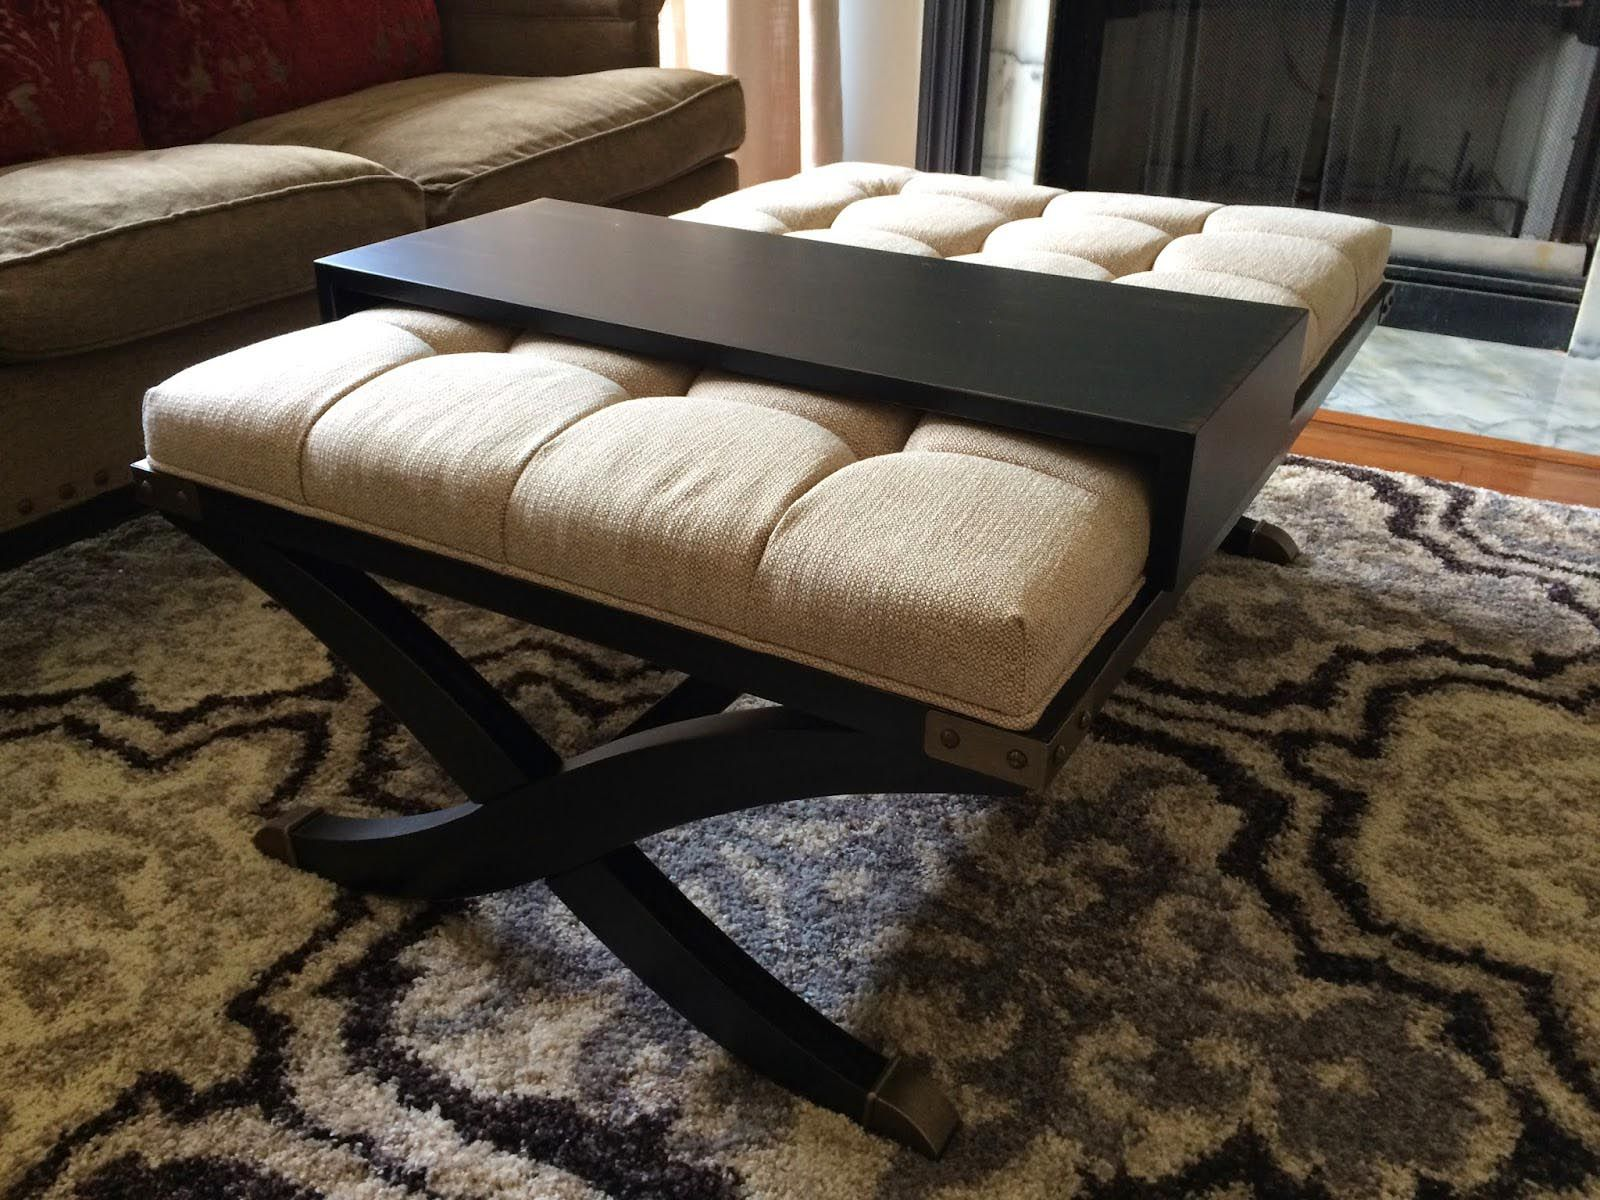 Dining Room Table Pad Covers Glamorous Padded Coffee Table Cover  Coffee Tables  Pinterest  Coffee 2018